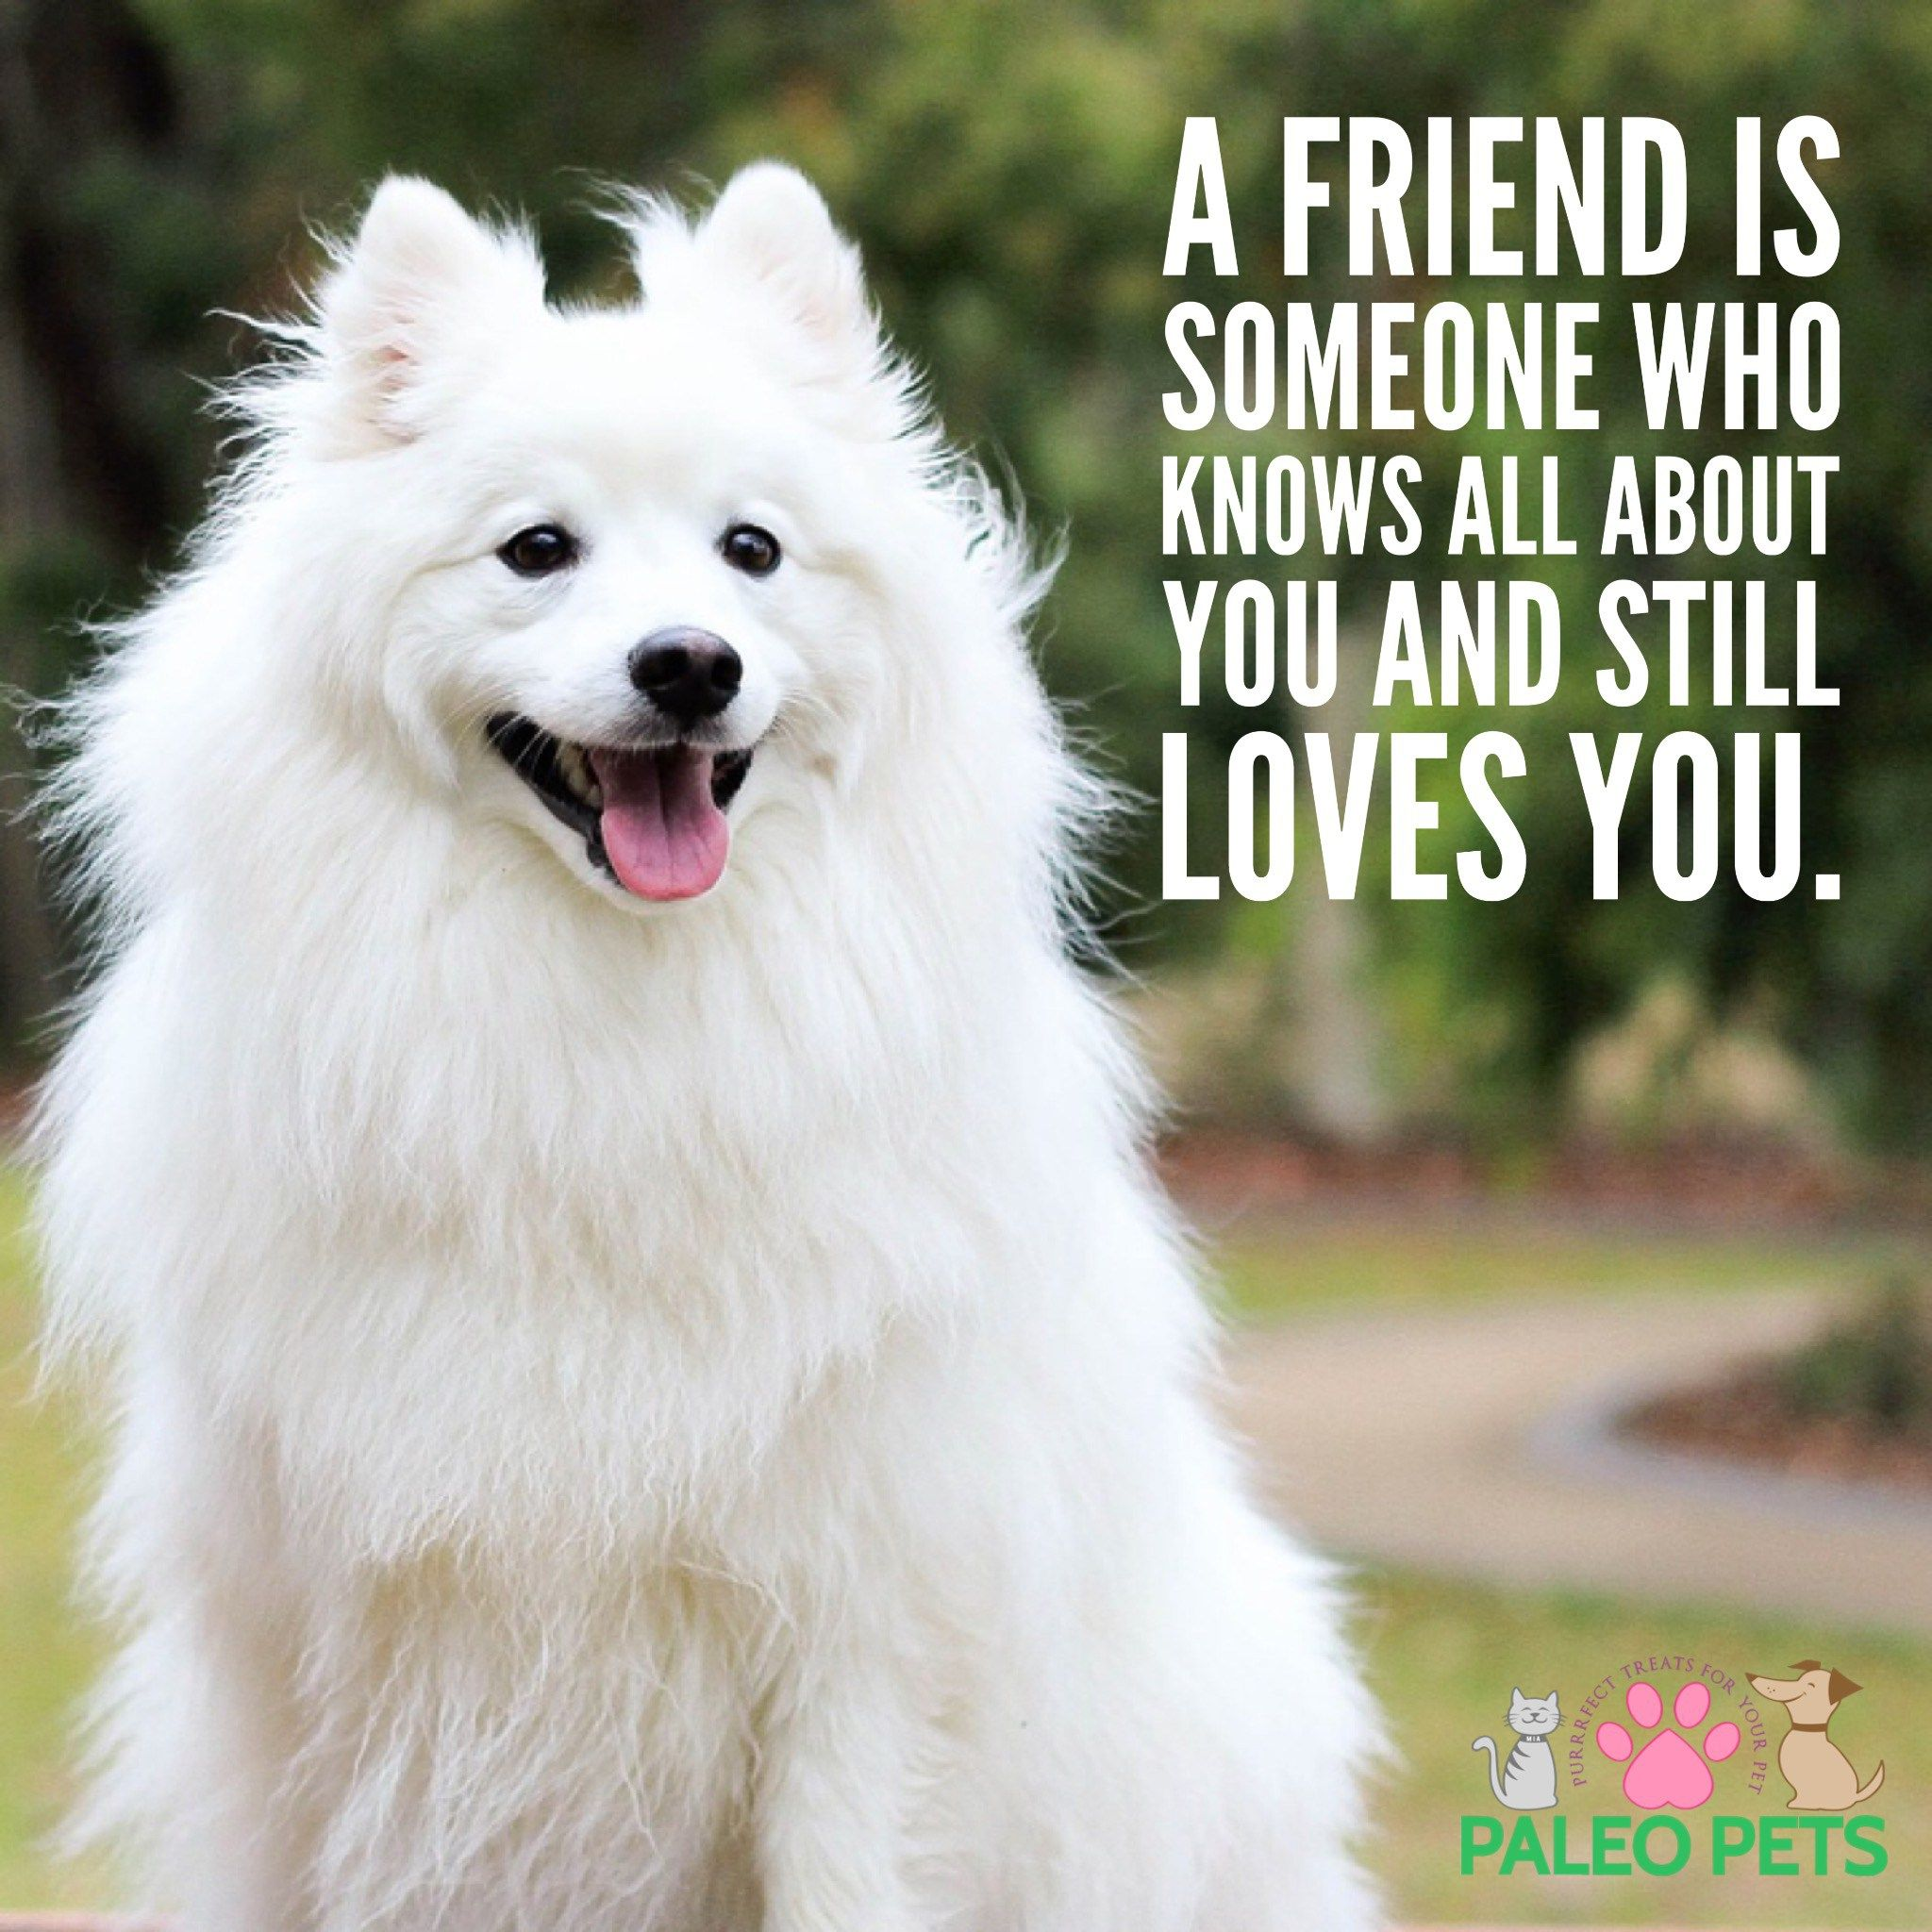 Have A Wonderful Wednesday Love Friends Pets Dogs Paleopets Pets Cute Animals Dogs